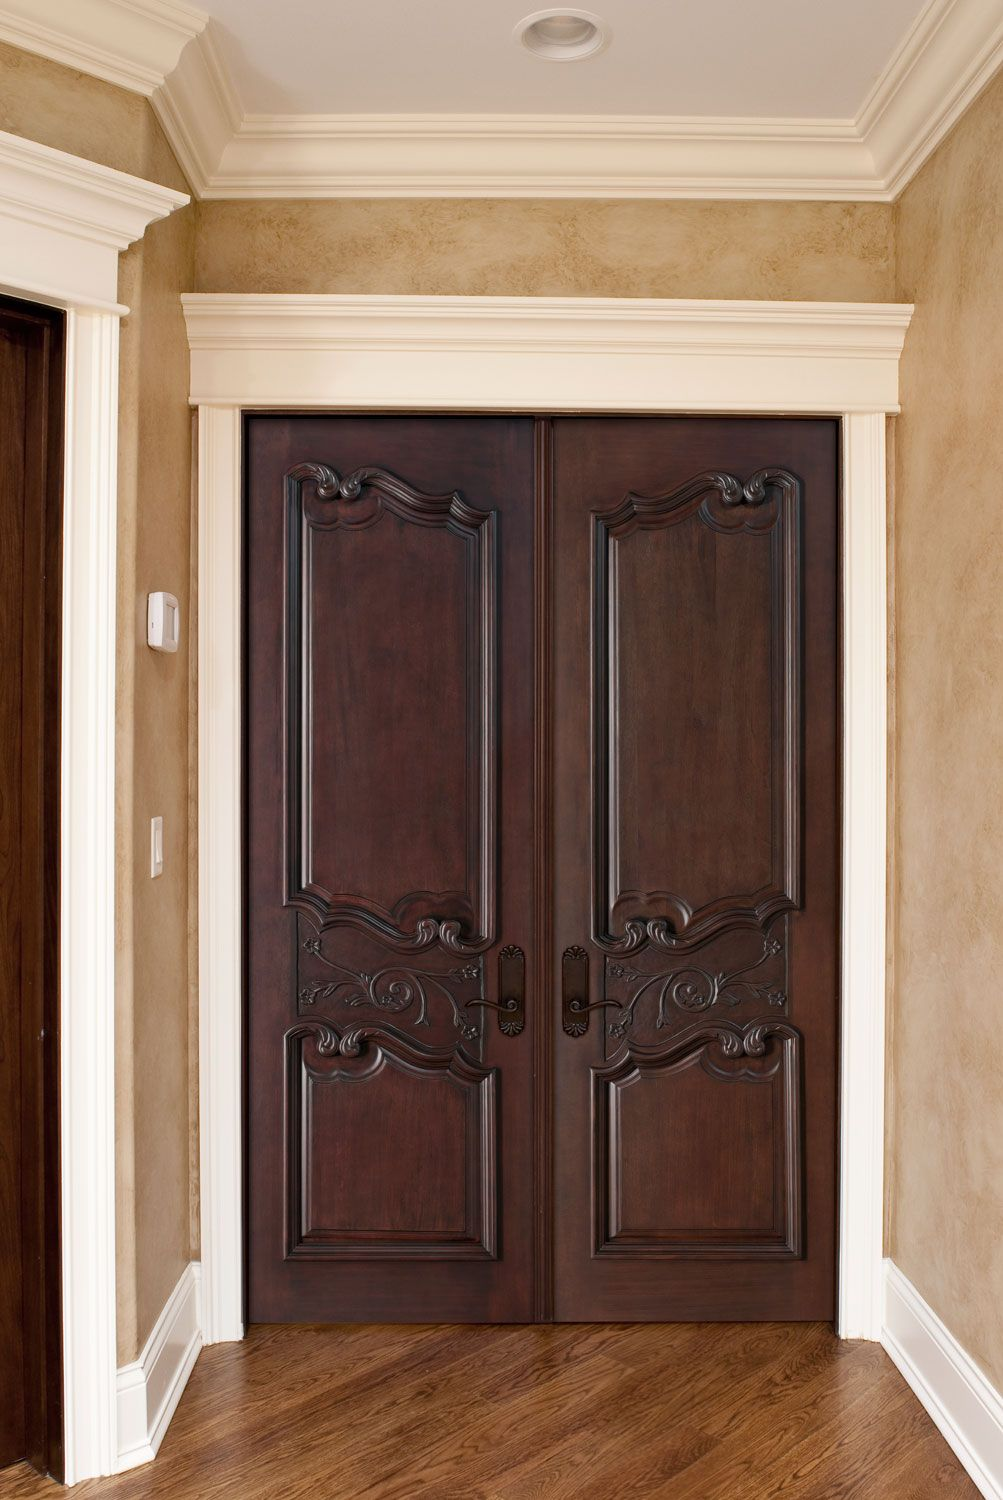 Interior doors double - Double Interior Library Doors Interior Double Doors Interior Custom Mahogany Wood